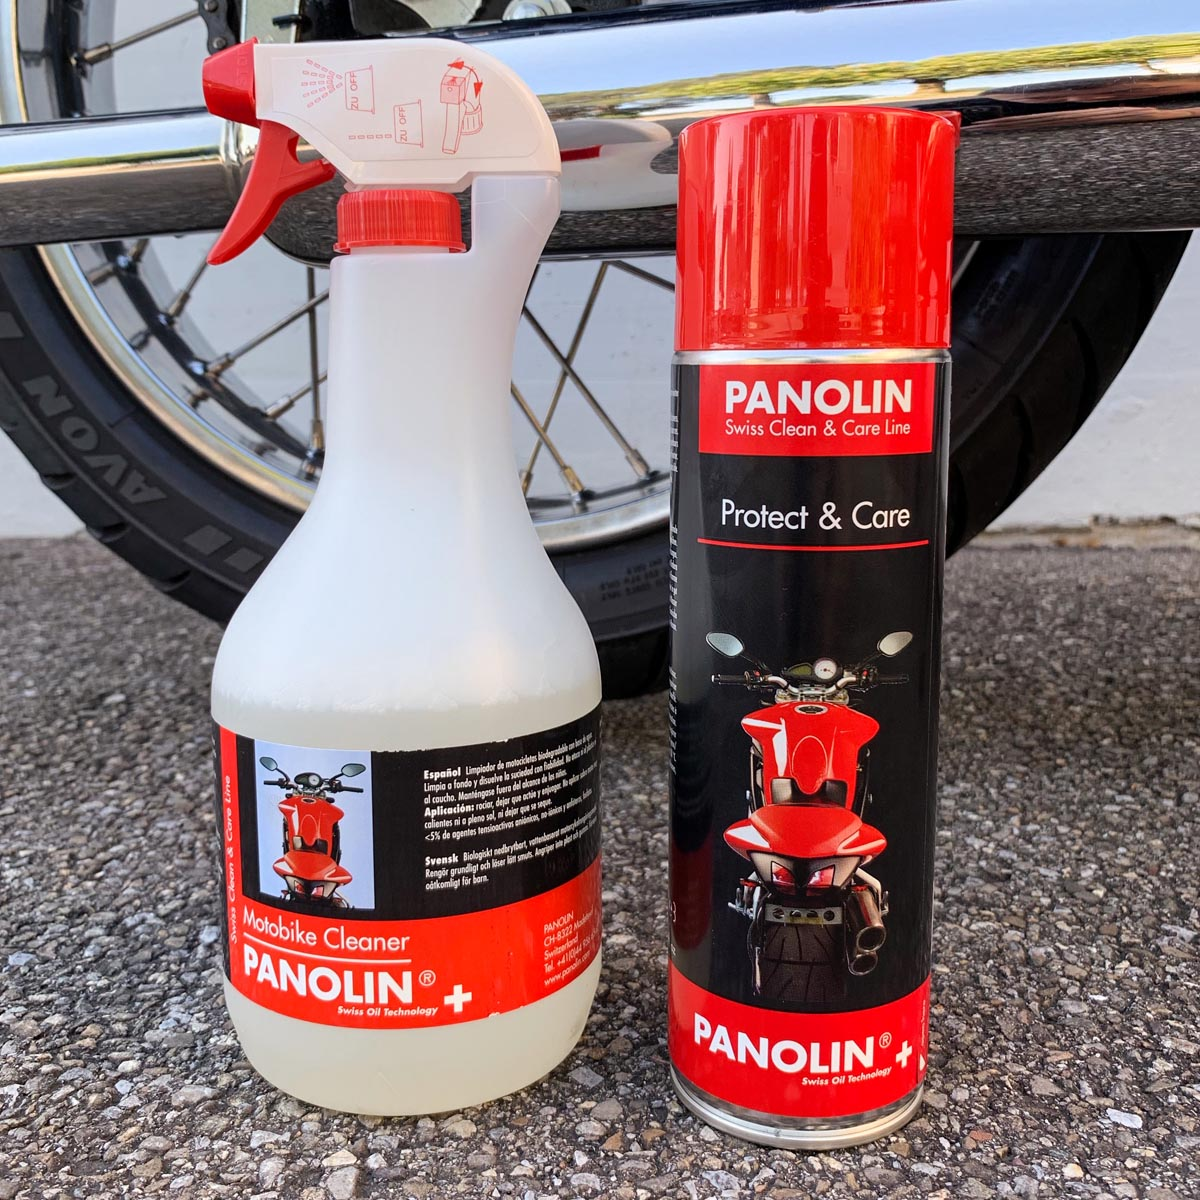 PANOLIN MOTOBIKE CLEANER & PANOLIN PROTECT & CARE Spray